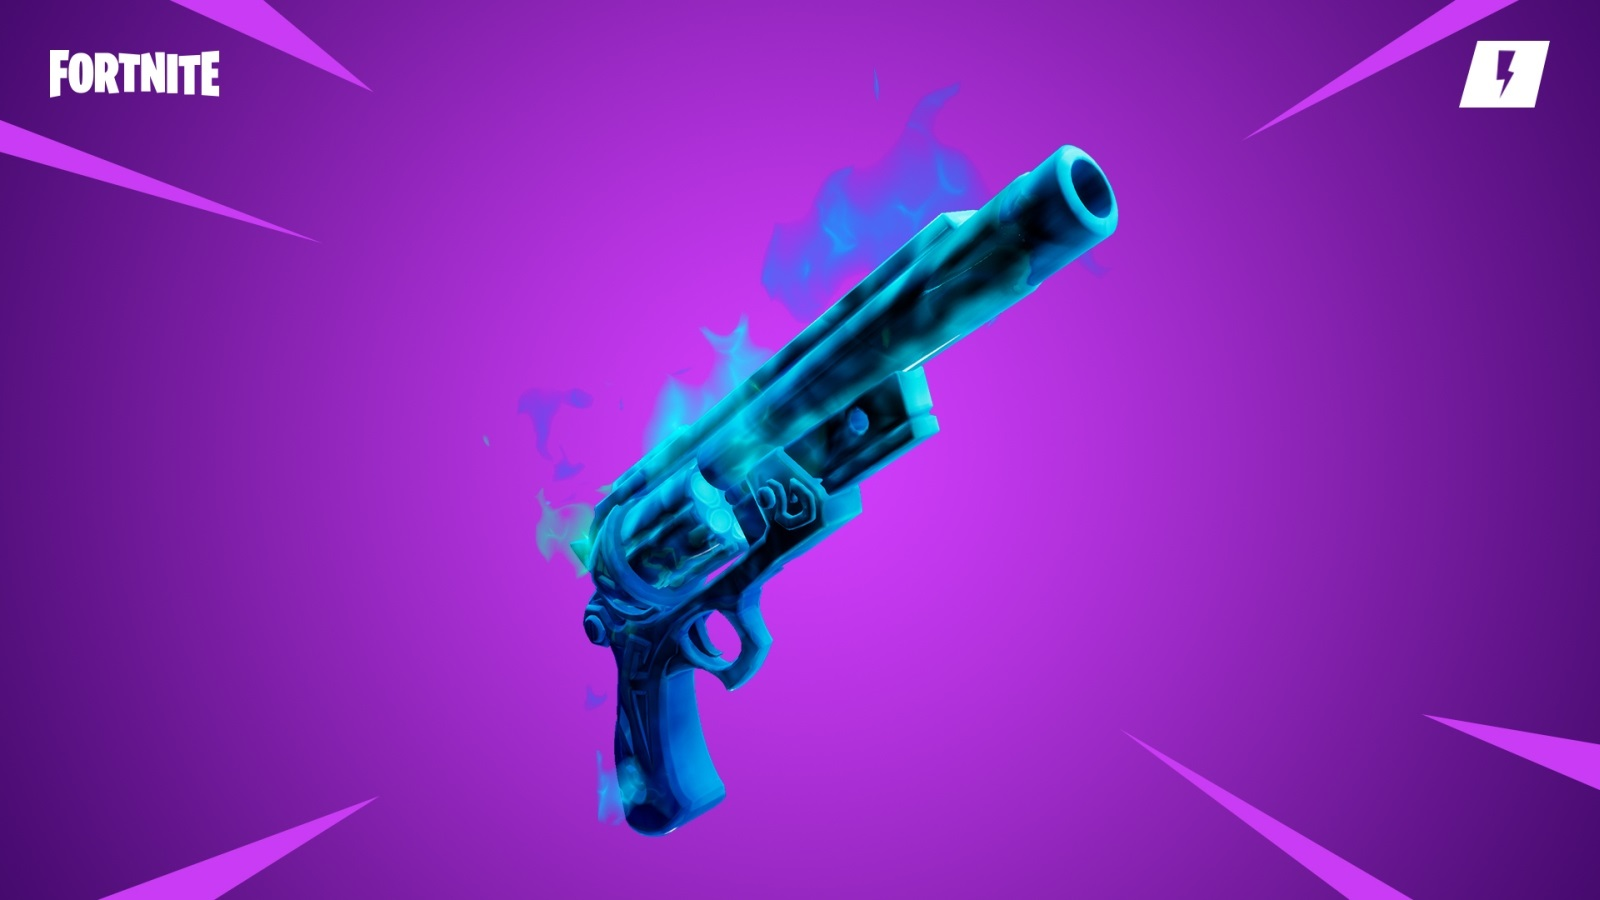 Fortnite; screenshot: ghost pistol